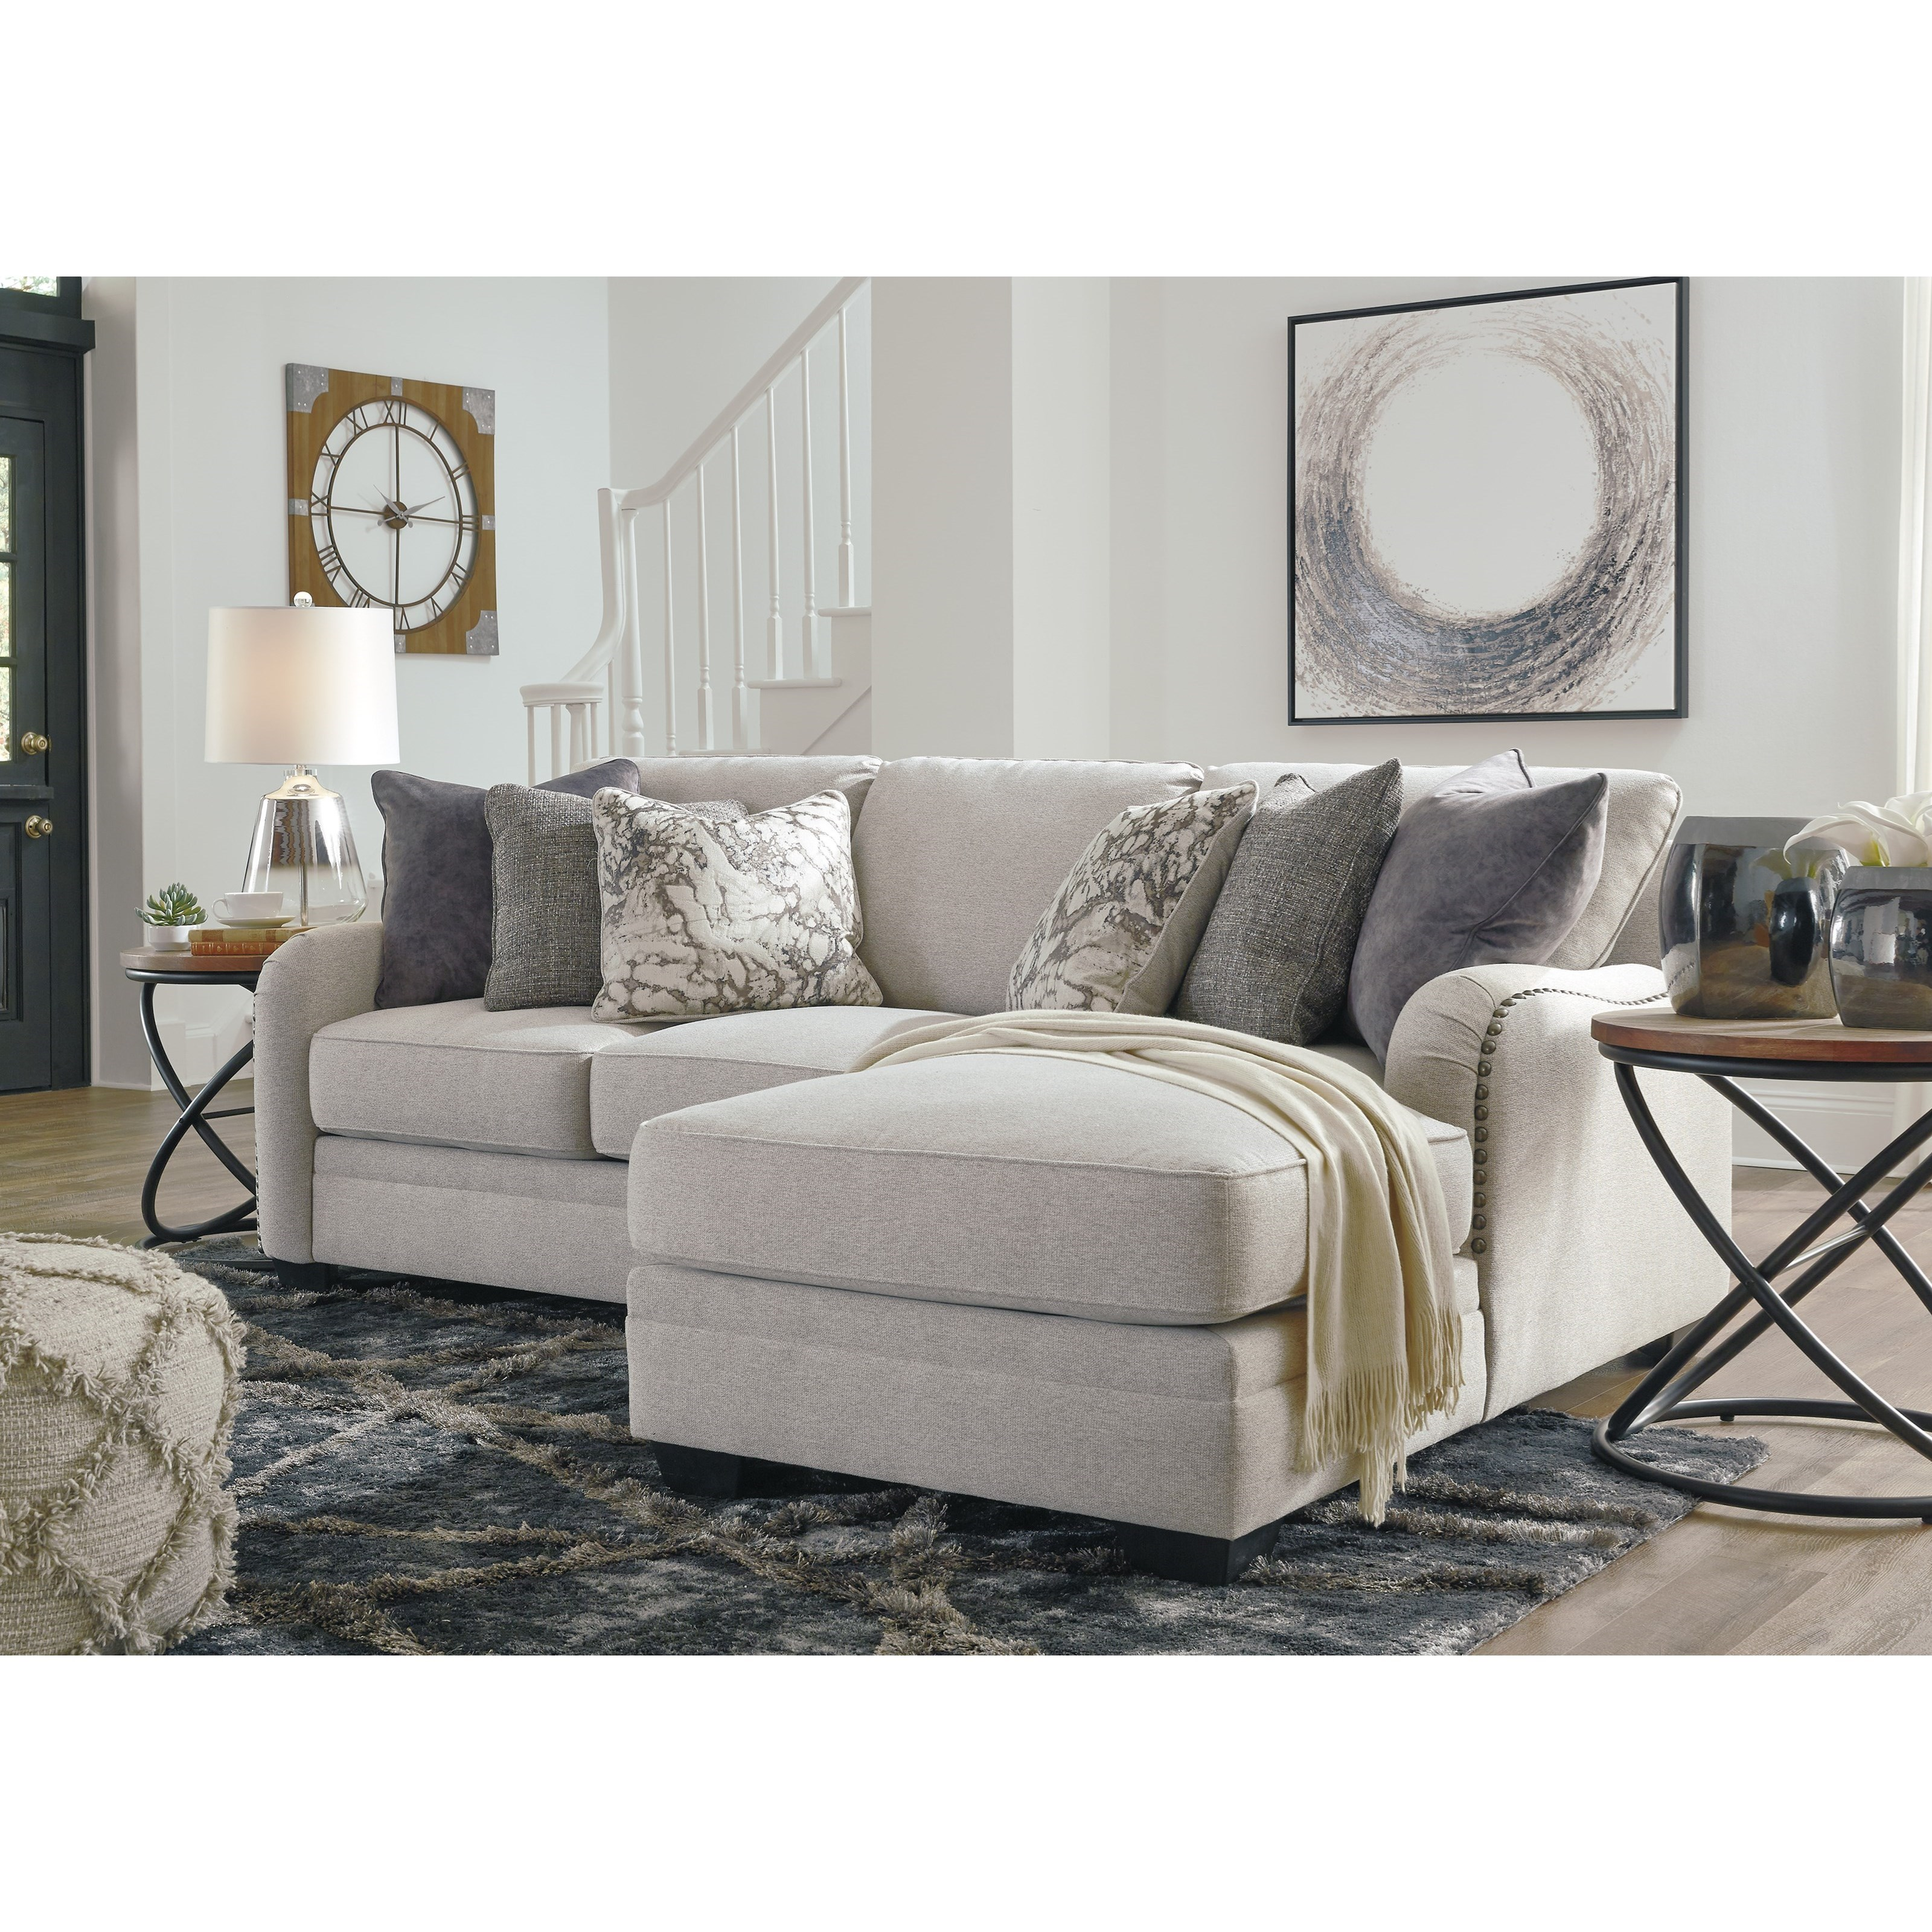 Dellara 2-Piece Sectional by Benchcraft at Beck's Furniture